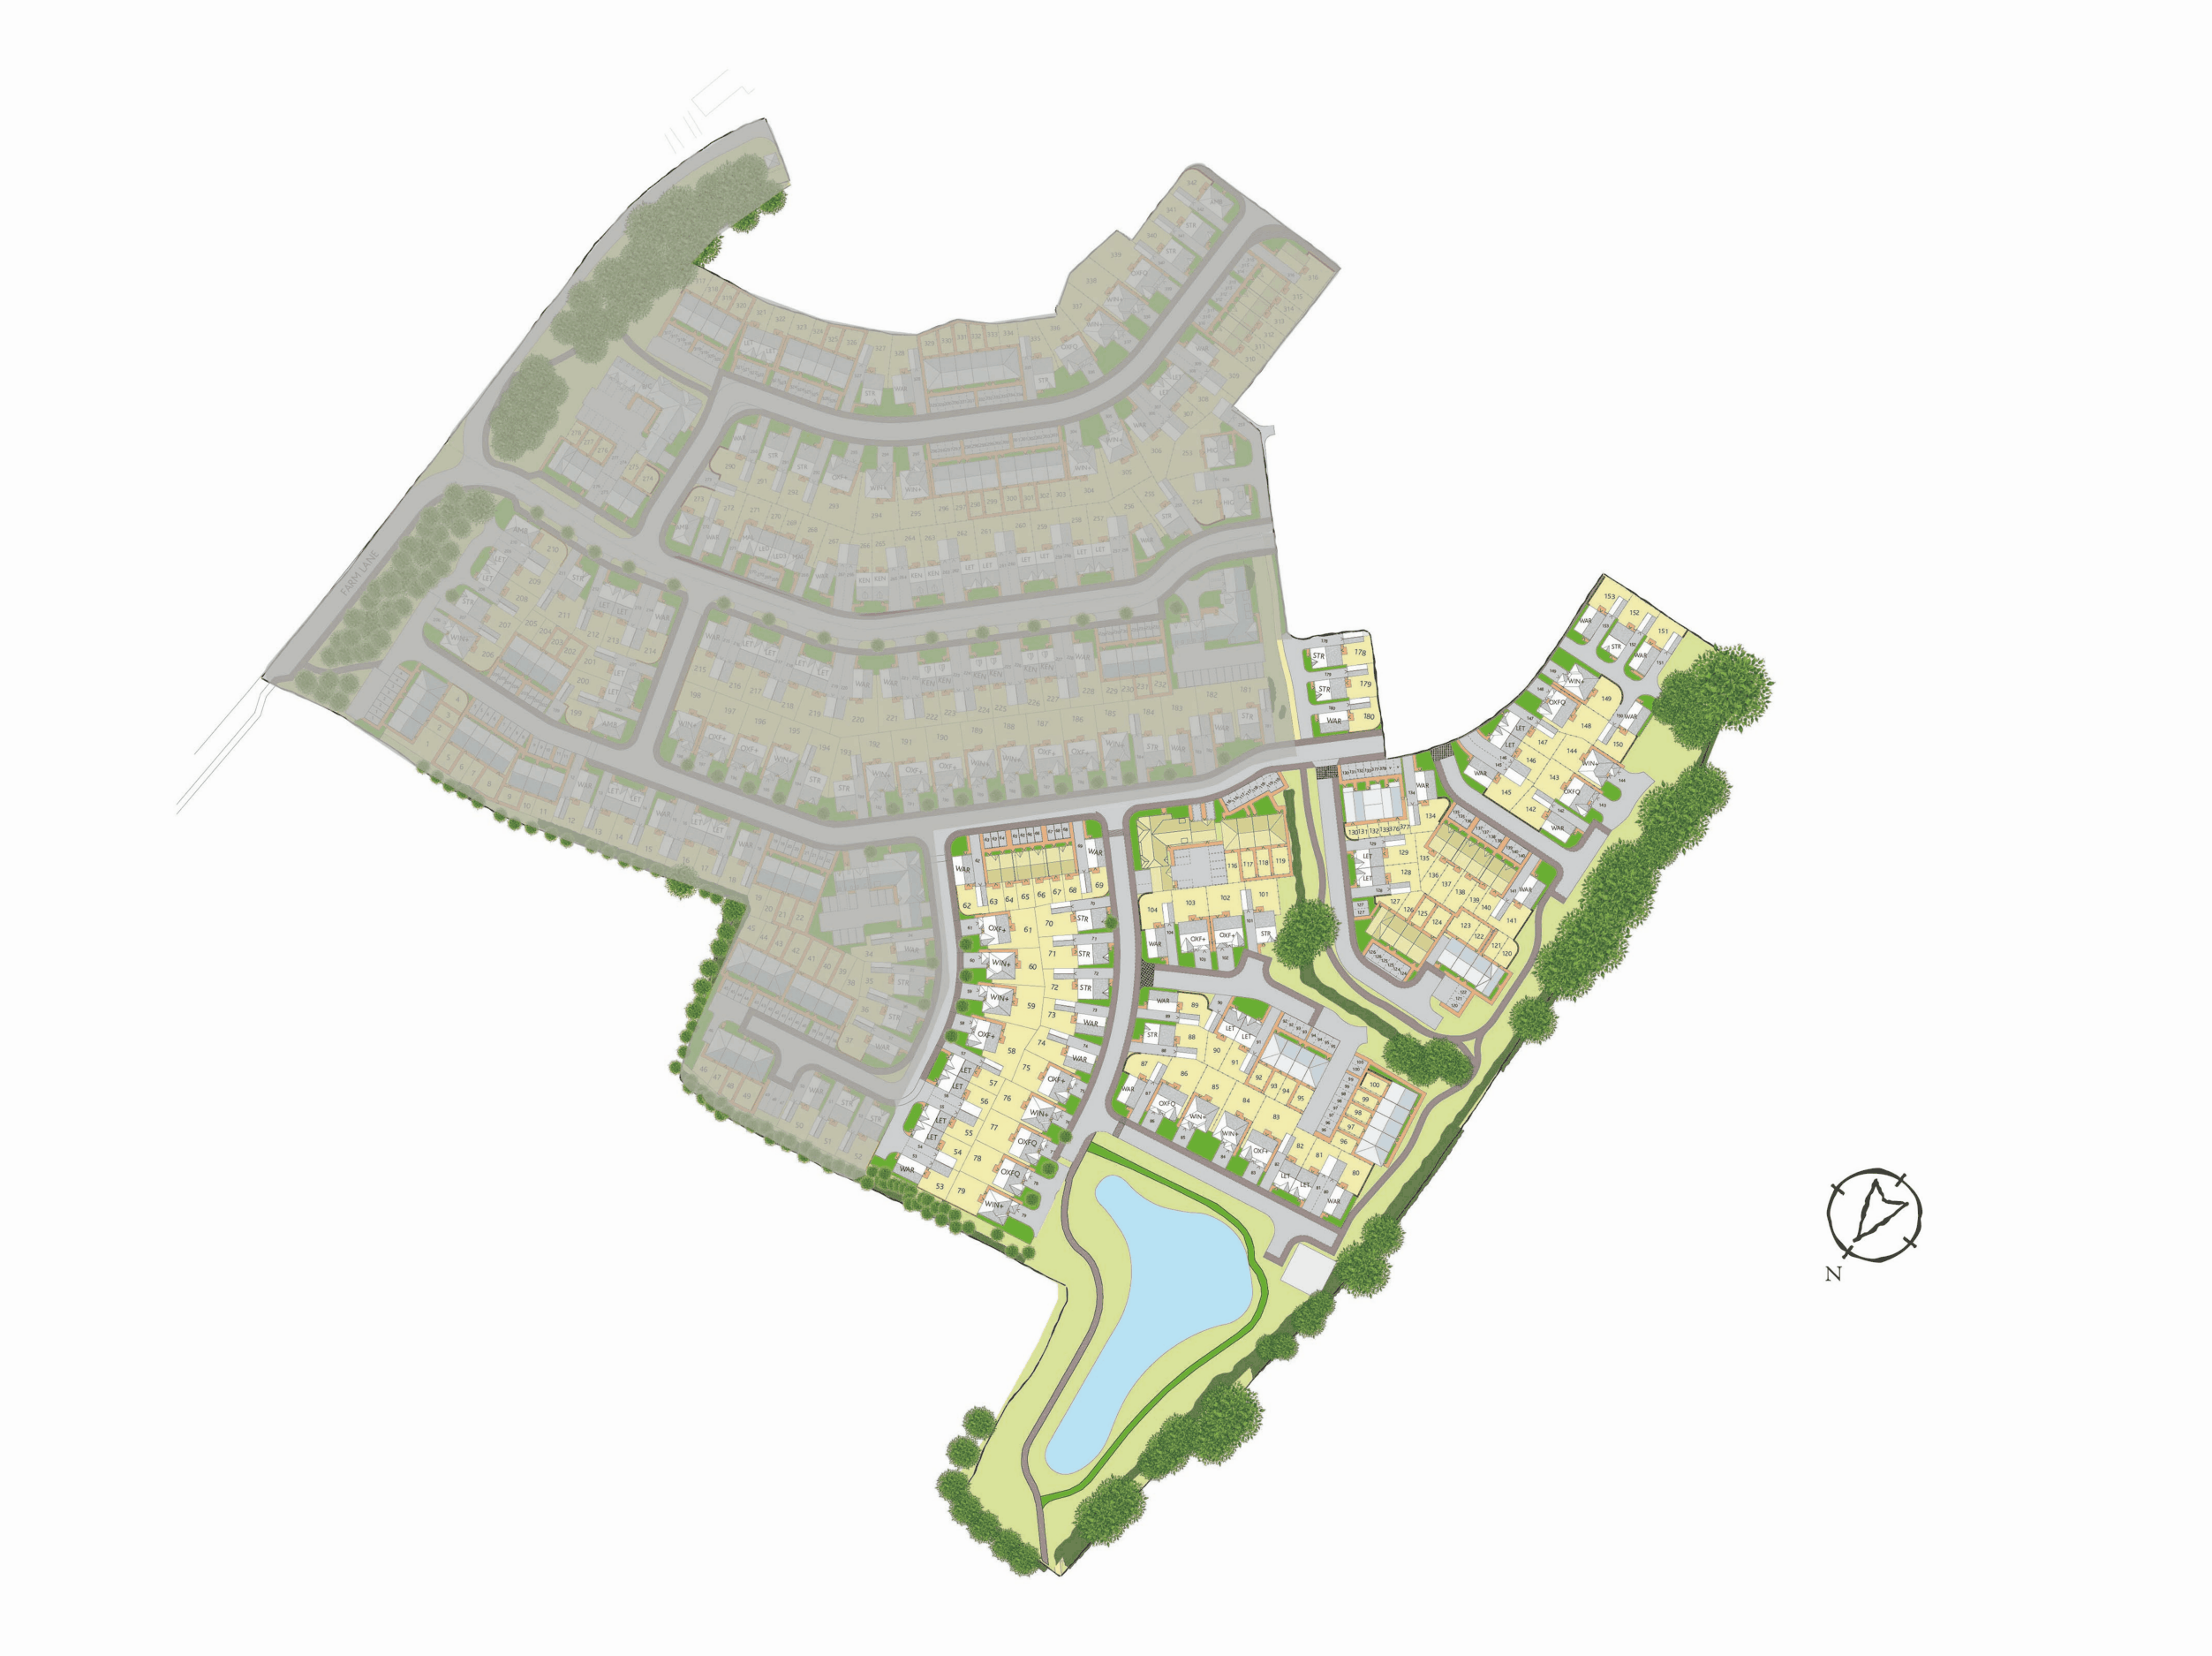 Interactive Site Plan 5360v2 plan